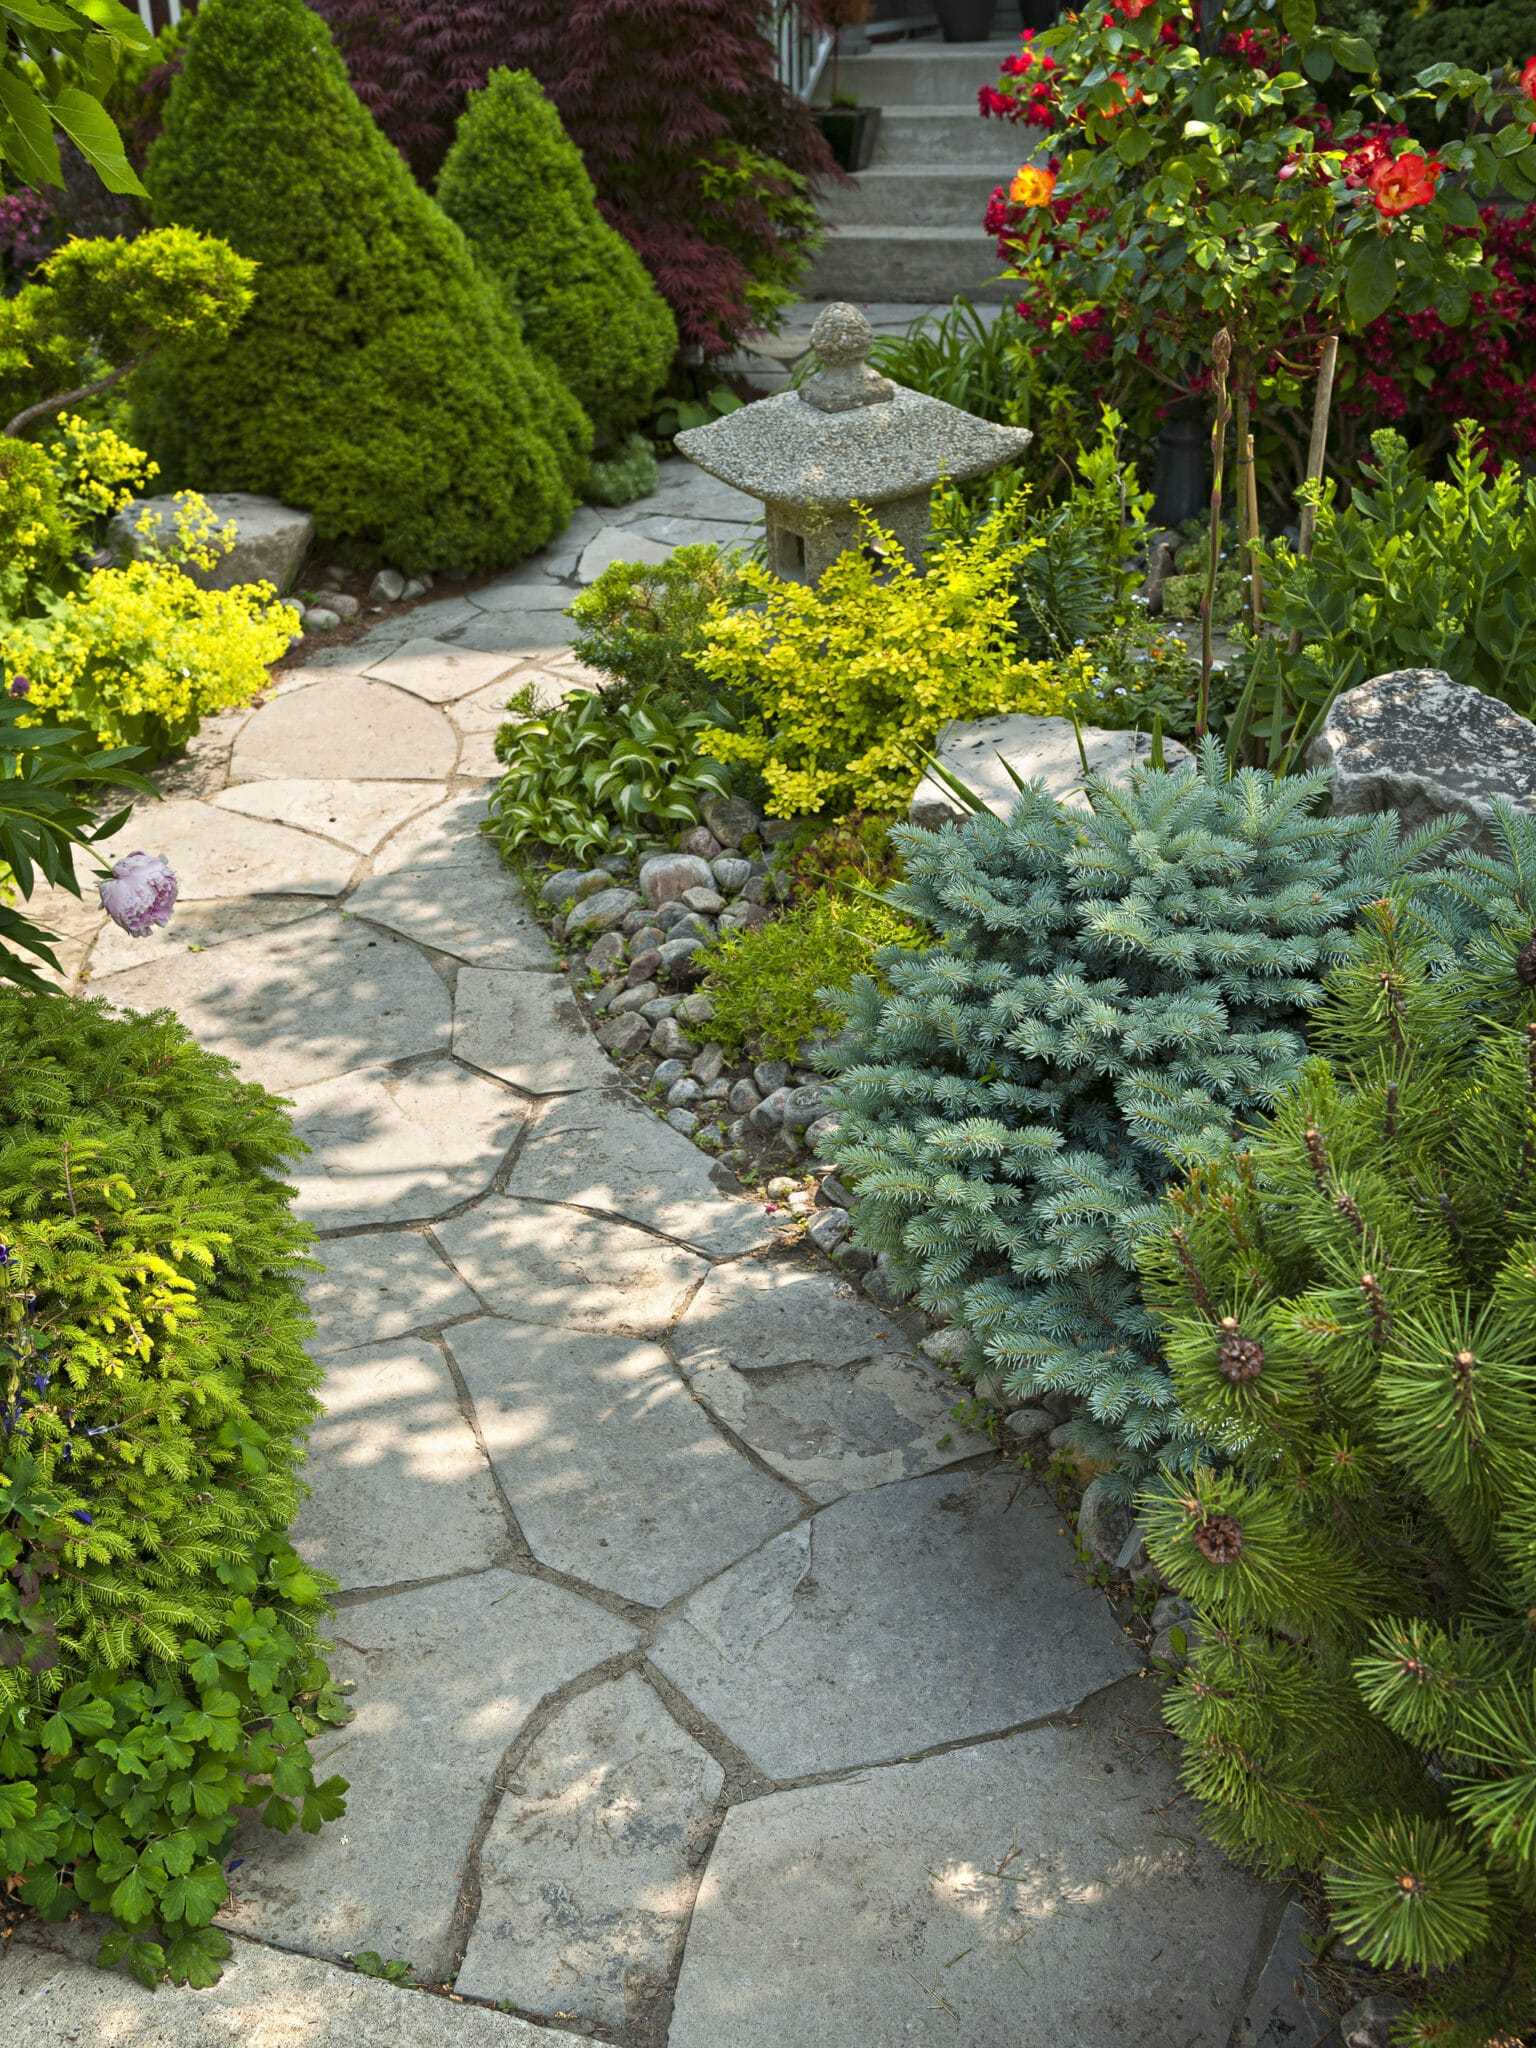 A stone path in a garden as an example of hardscaping.